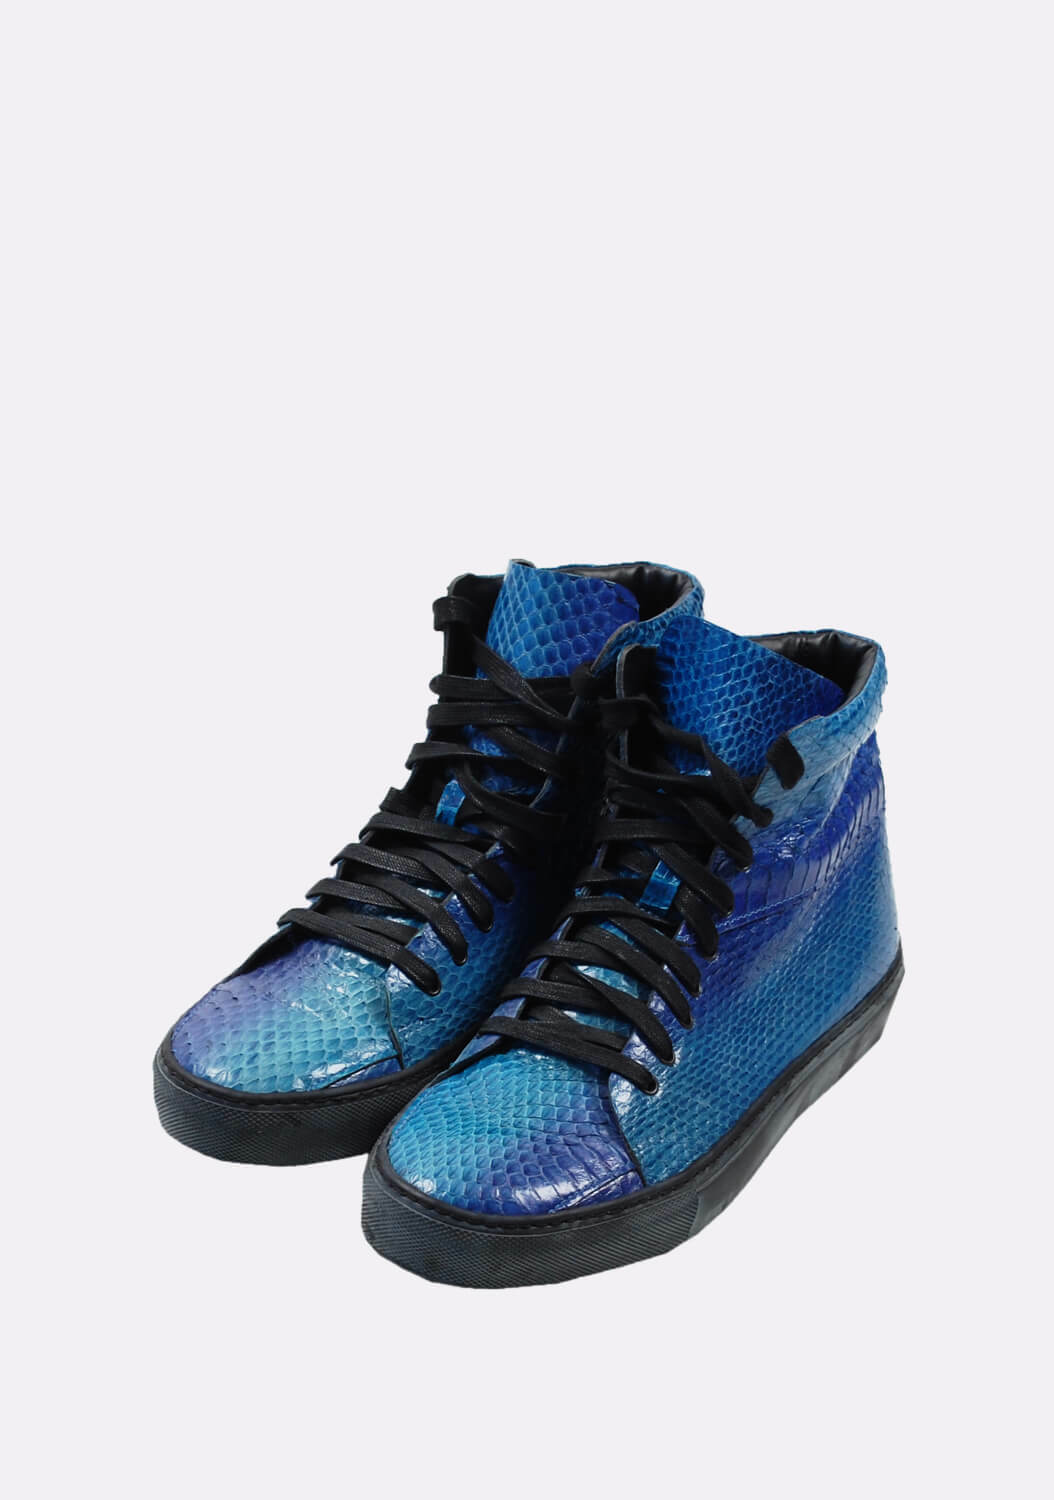 Original Acne Studios bluee Men Leather High Ankle Fasion Sneakers shoes size 40